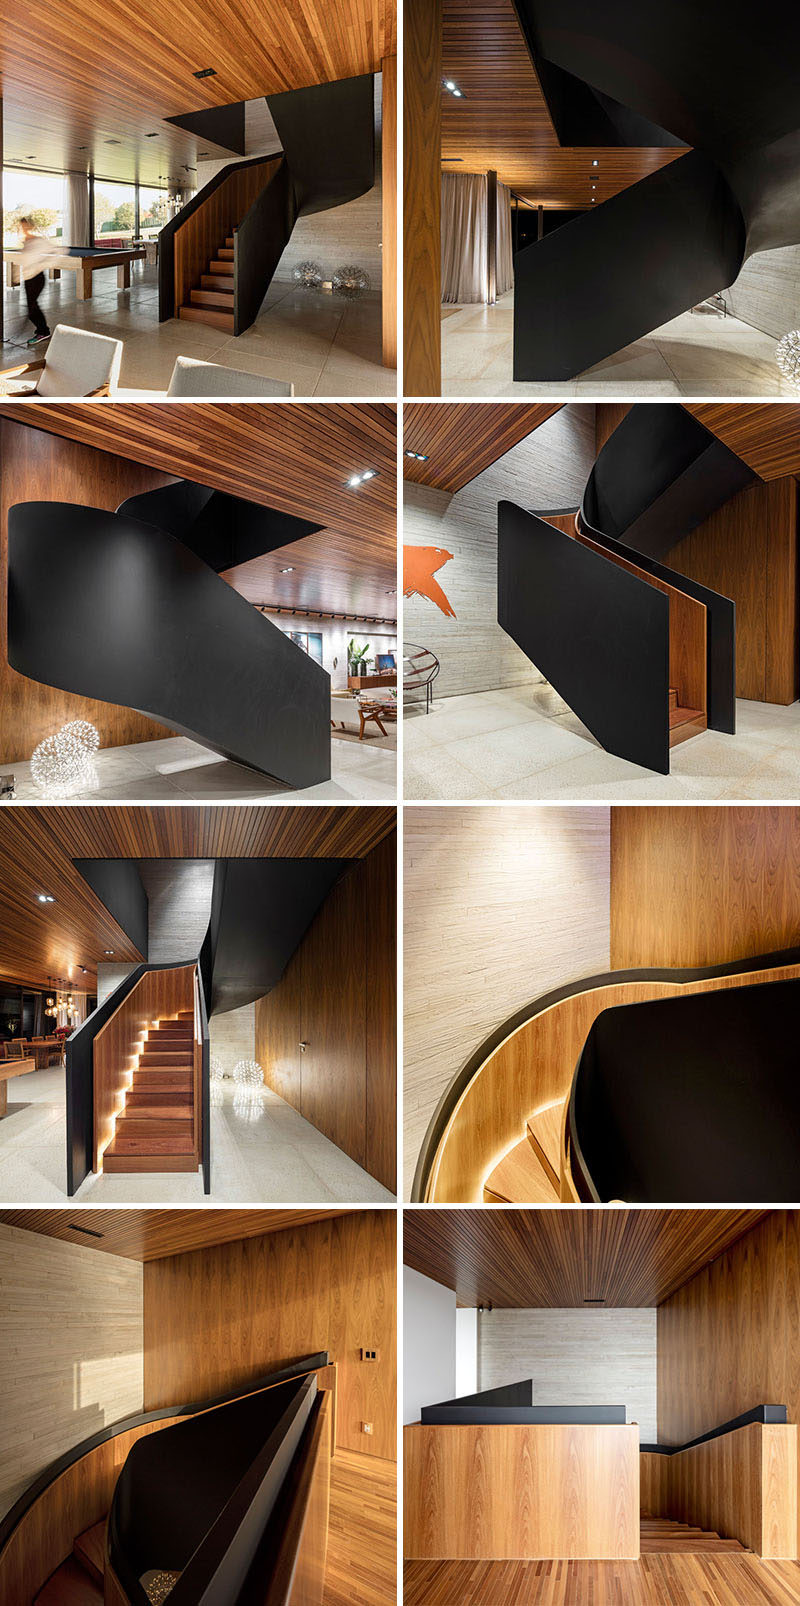 From many angles these stairs appear to just be a black staircase, however when looking at the interior of the stairs, you will see the stairs and handrail are actually wood. But that's not all, there's also lighting that wraps its way up the stairs, hidden between the stairs and the handrail.